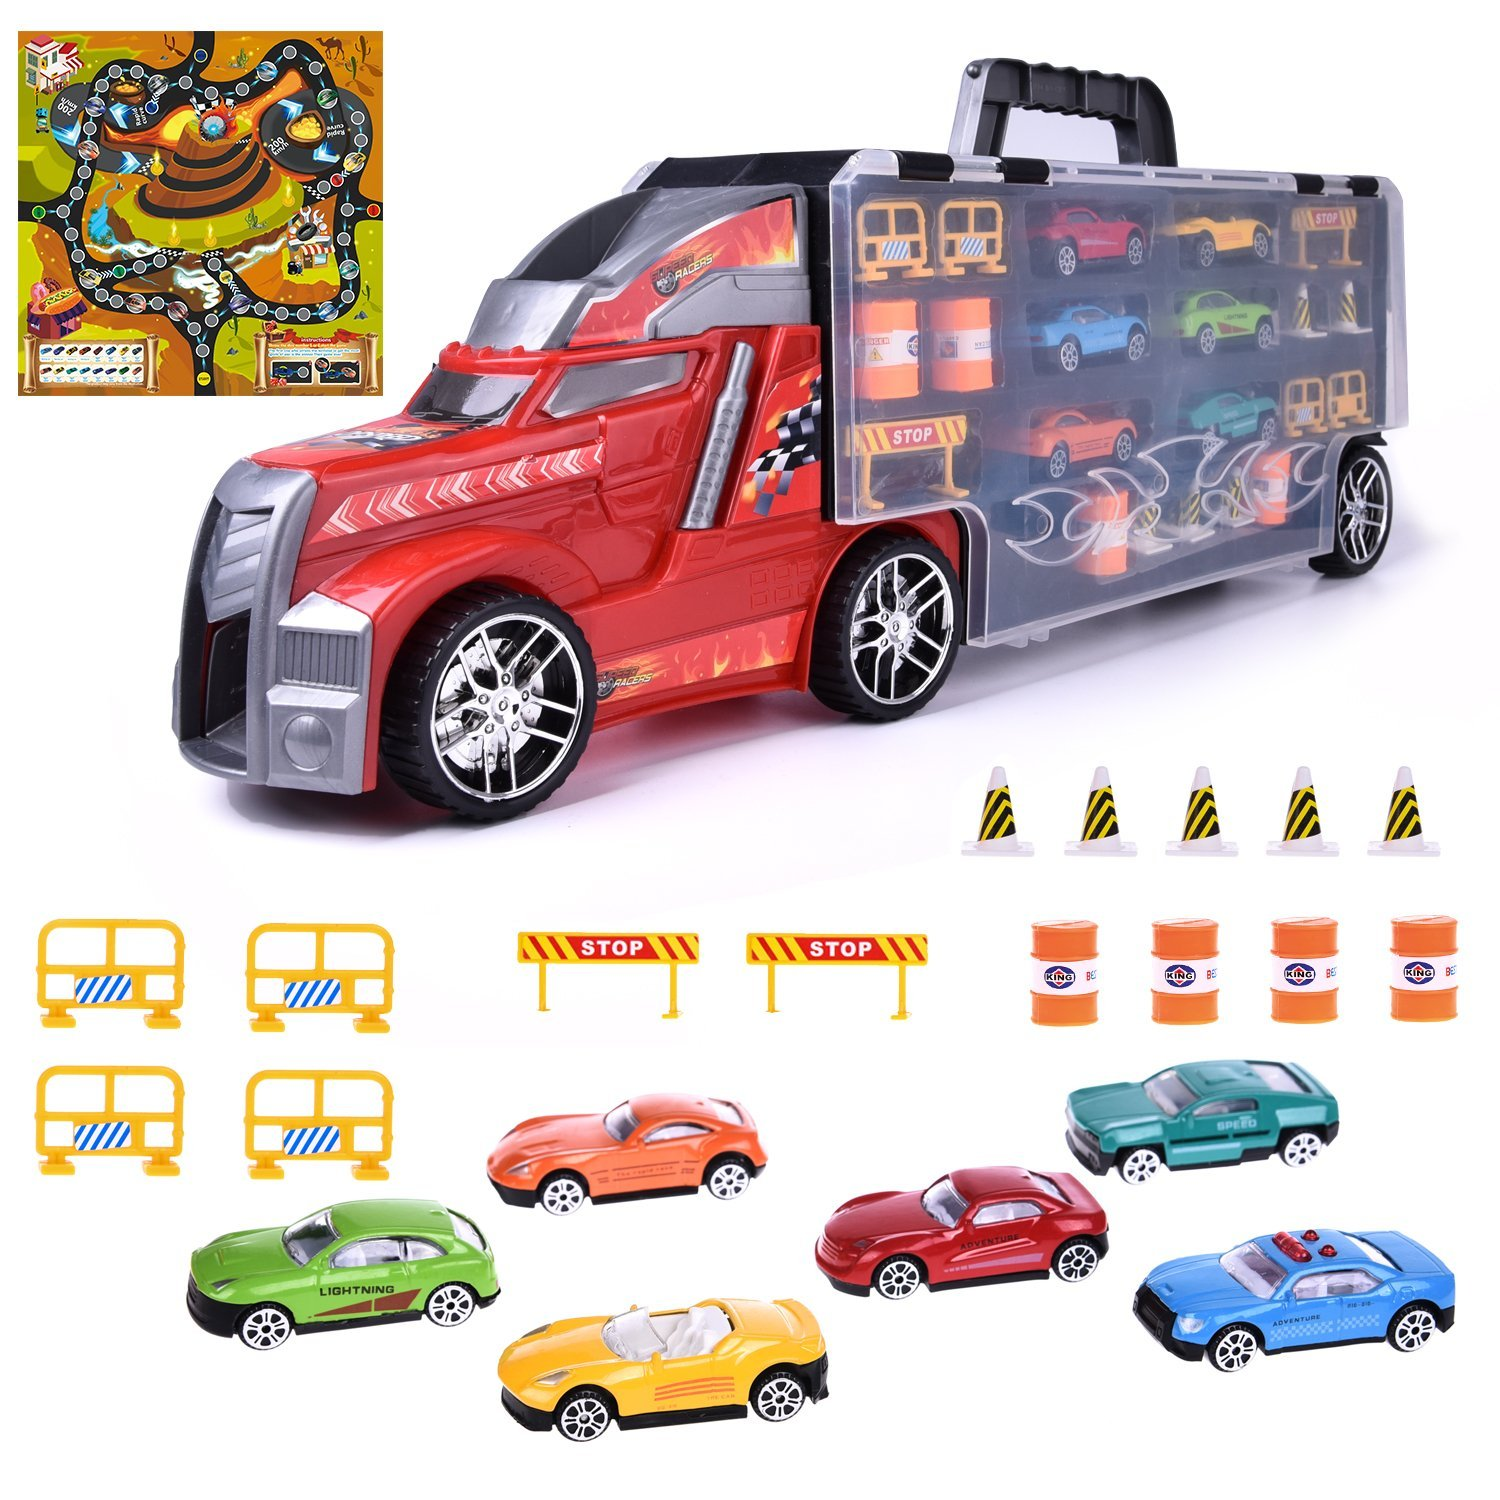 Hot Tow Truck Wheels Cars Collections Boys Toys for Kids Birthday Parties, Goodie Bag with Mega Hauler Shape Container 22 PCs F-18